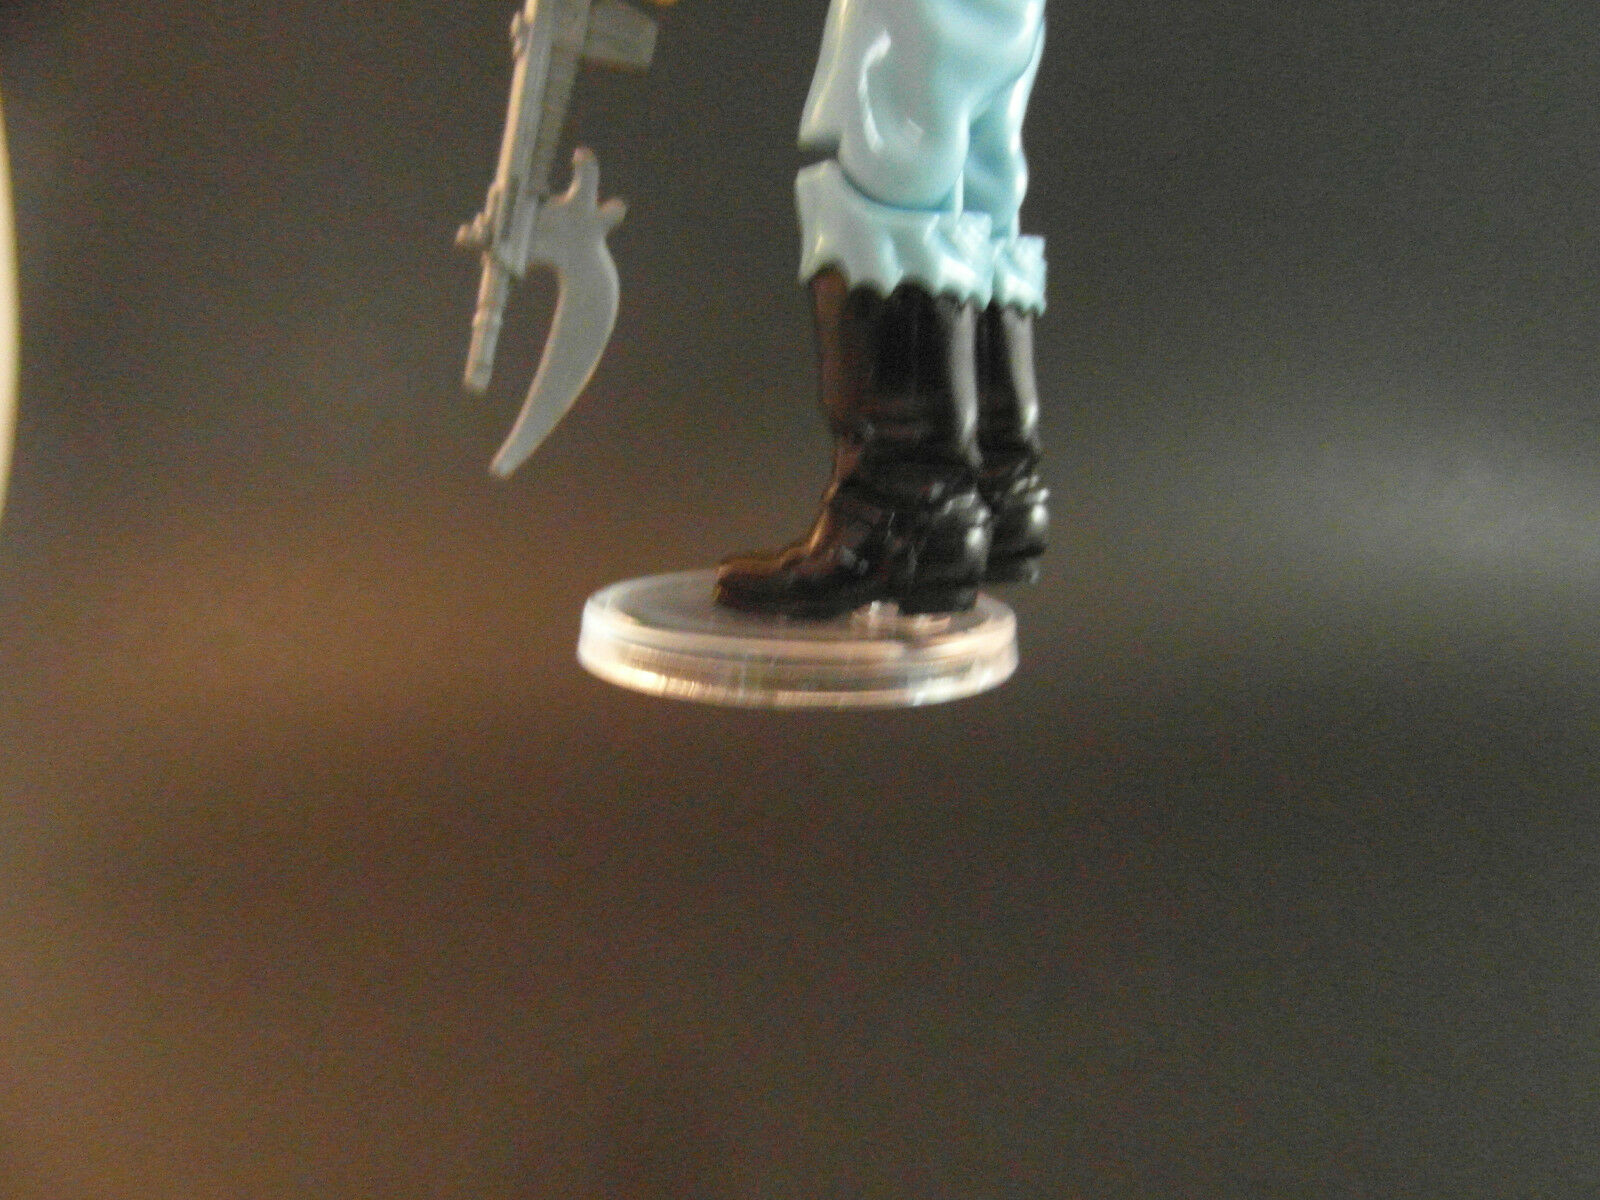 GI JOE ACTION ACTION ACTION FIGURE DISPLAY STANDS FOR VINTAGE FIGURES CLEAR X 200 T6c 84be6e